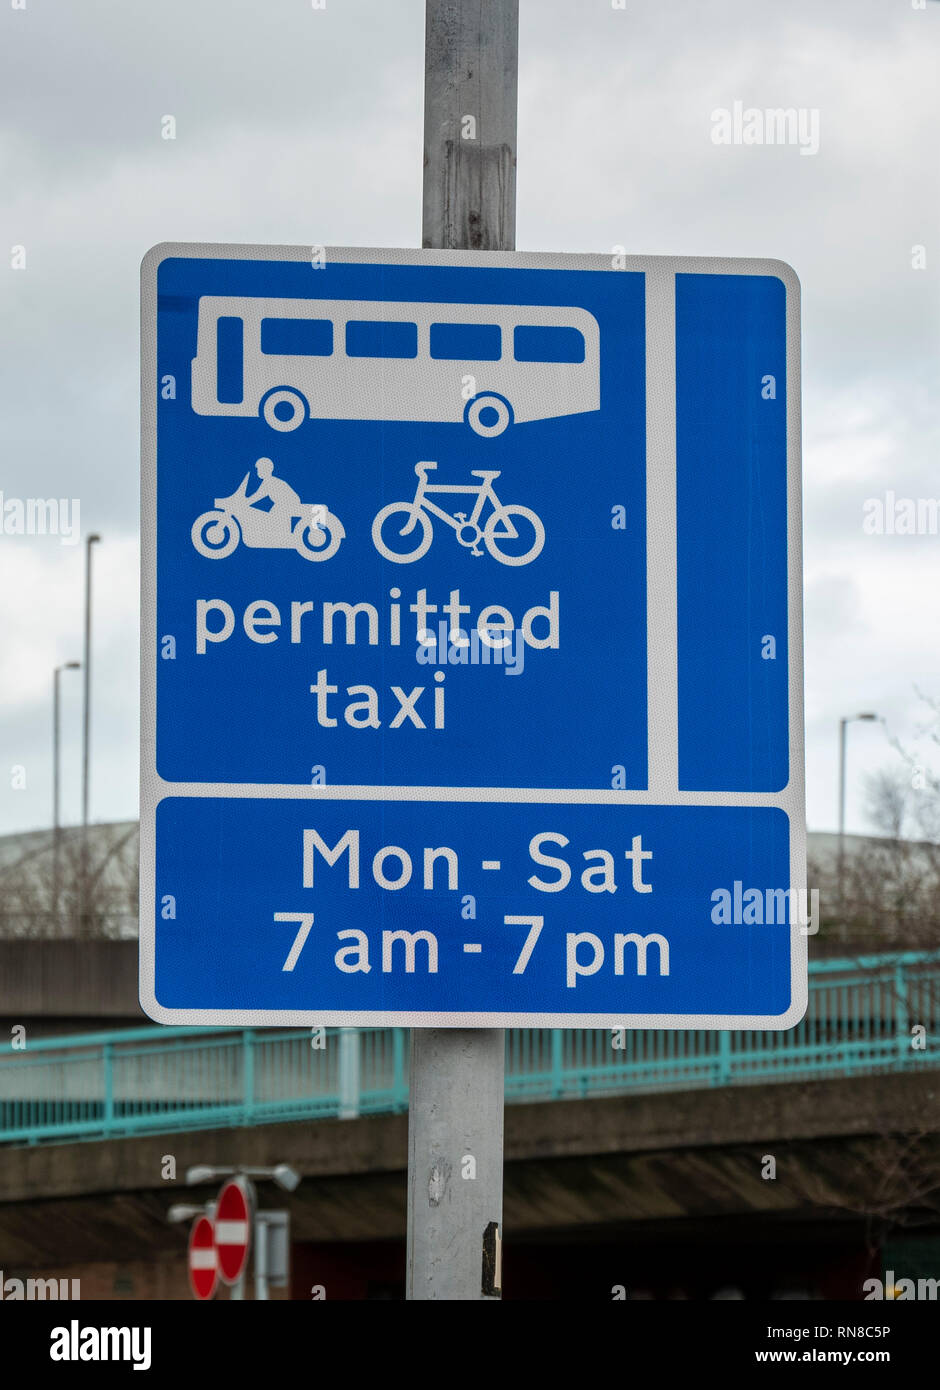 Taxi permitted sign with timings, Belfast, - Stock Image